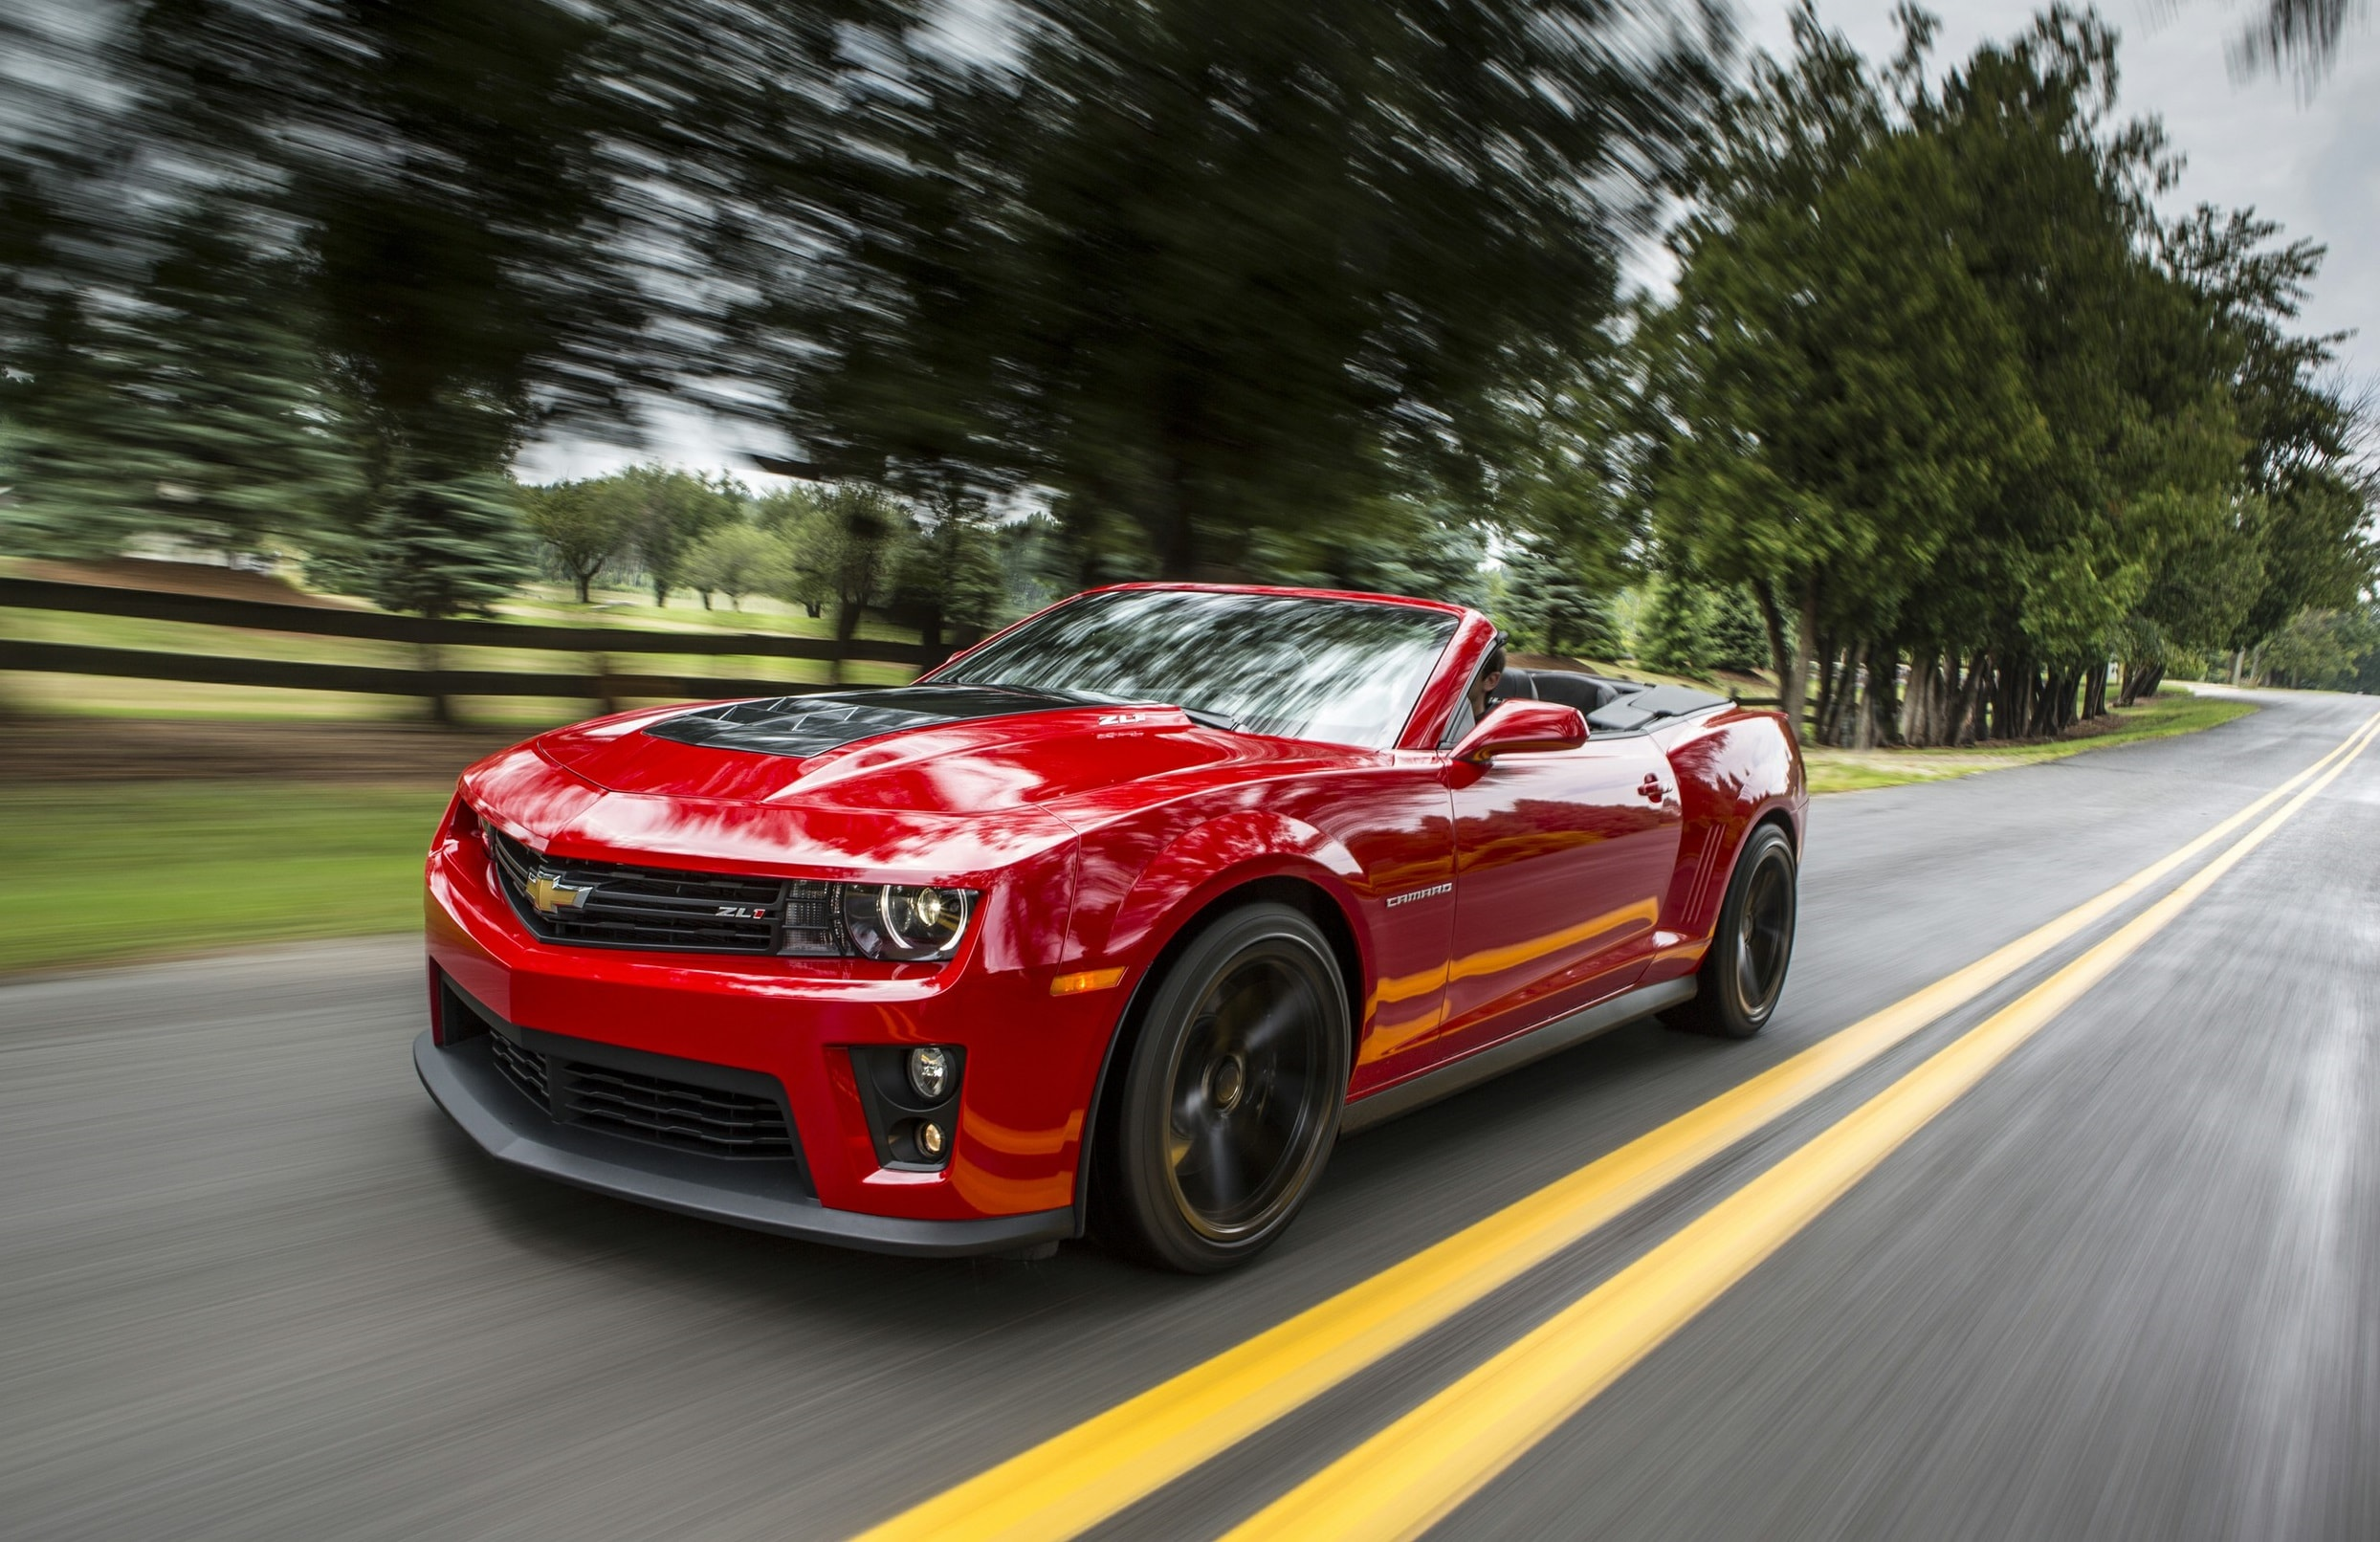 Chevy Camaro ZL1 HD Desktop Wallpapers 7wallpapersnet 2488x1612